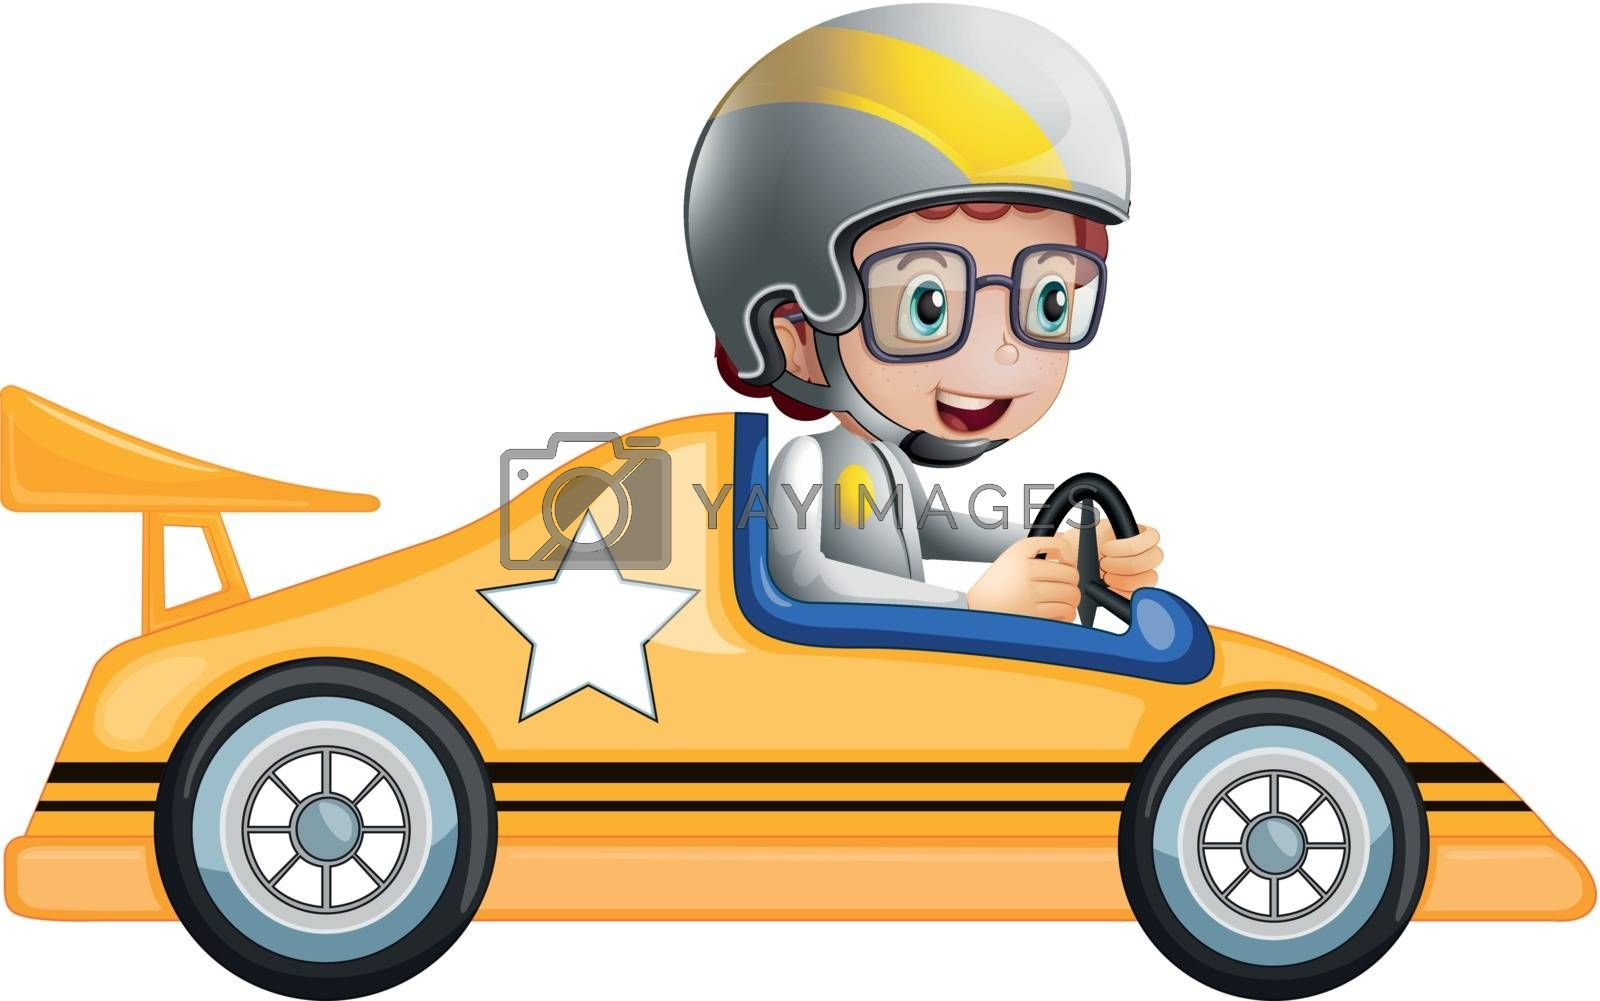 Illustration of a girl in her yellow racing car on a white background